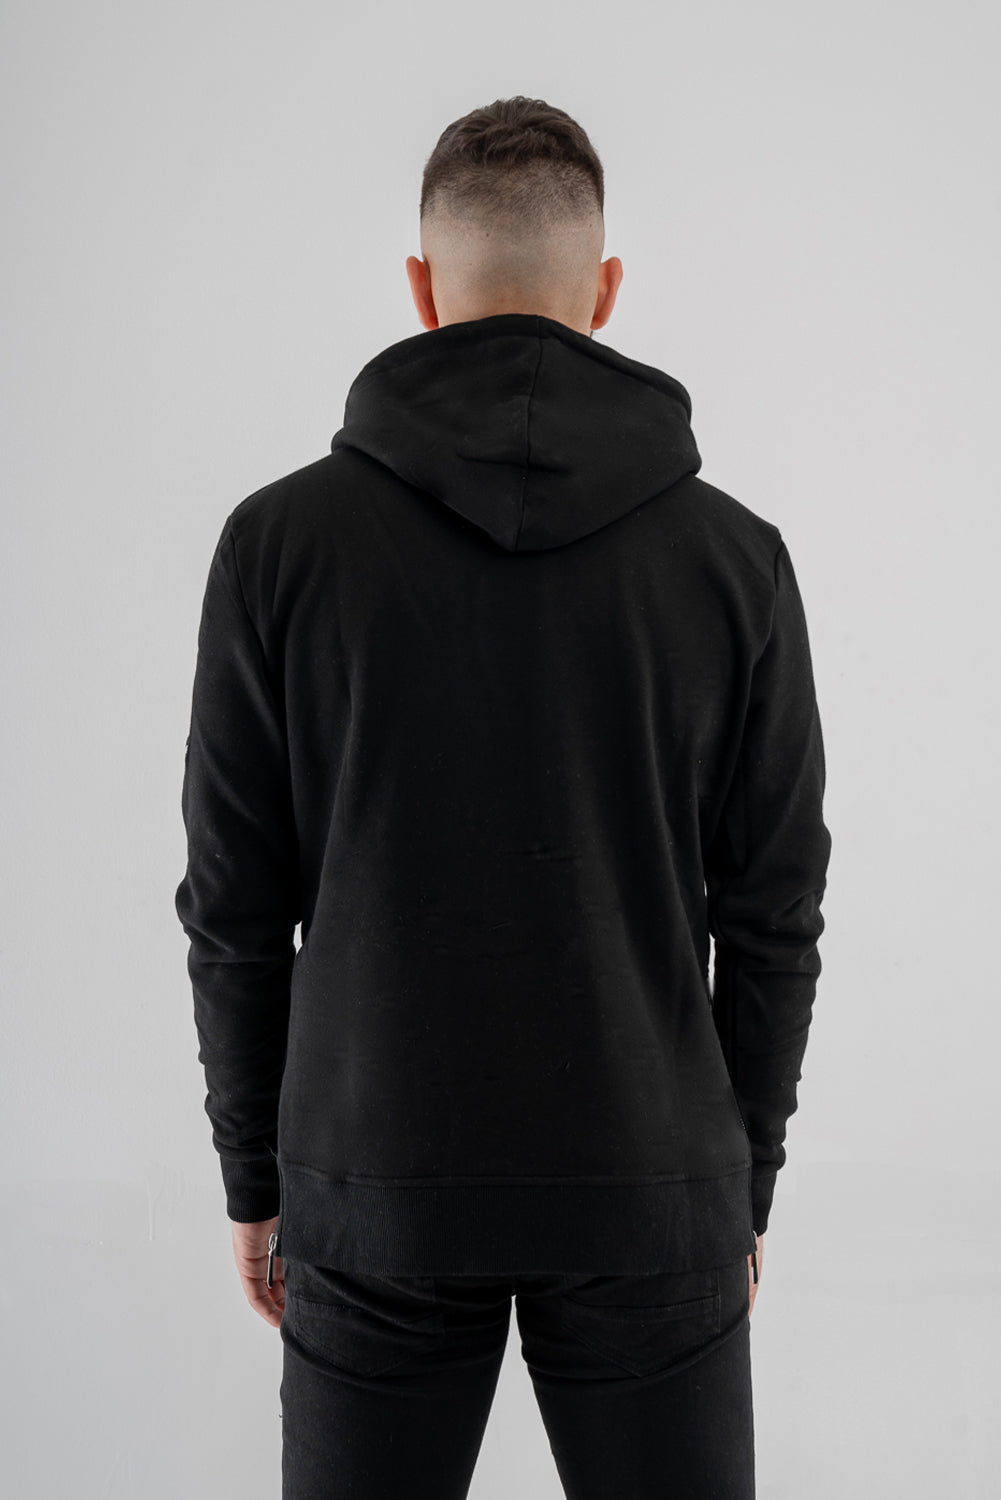 Glorious Gangsta Vetica Hoody - Black